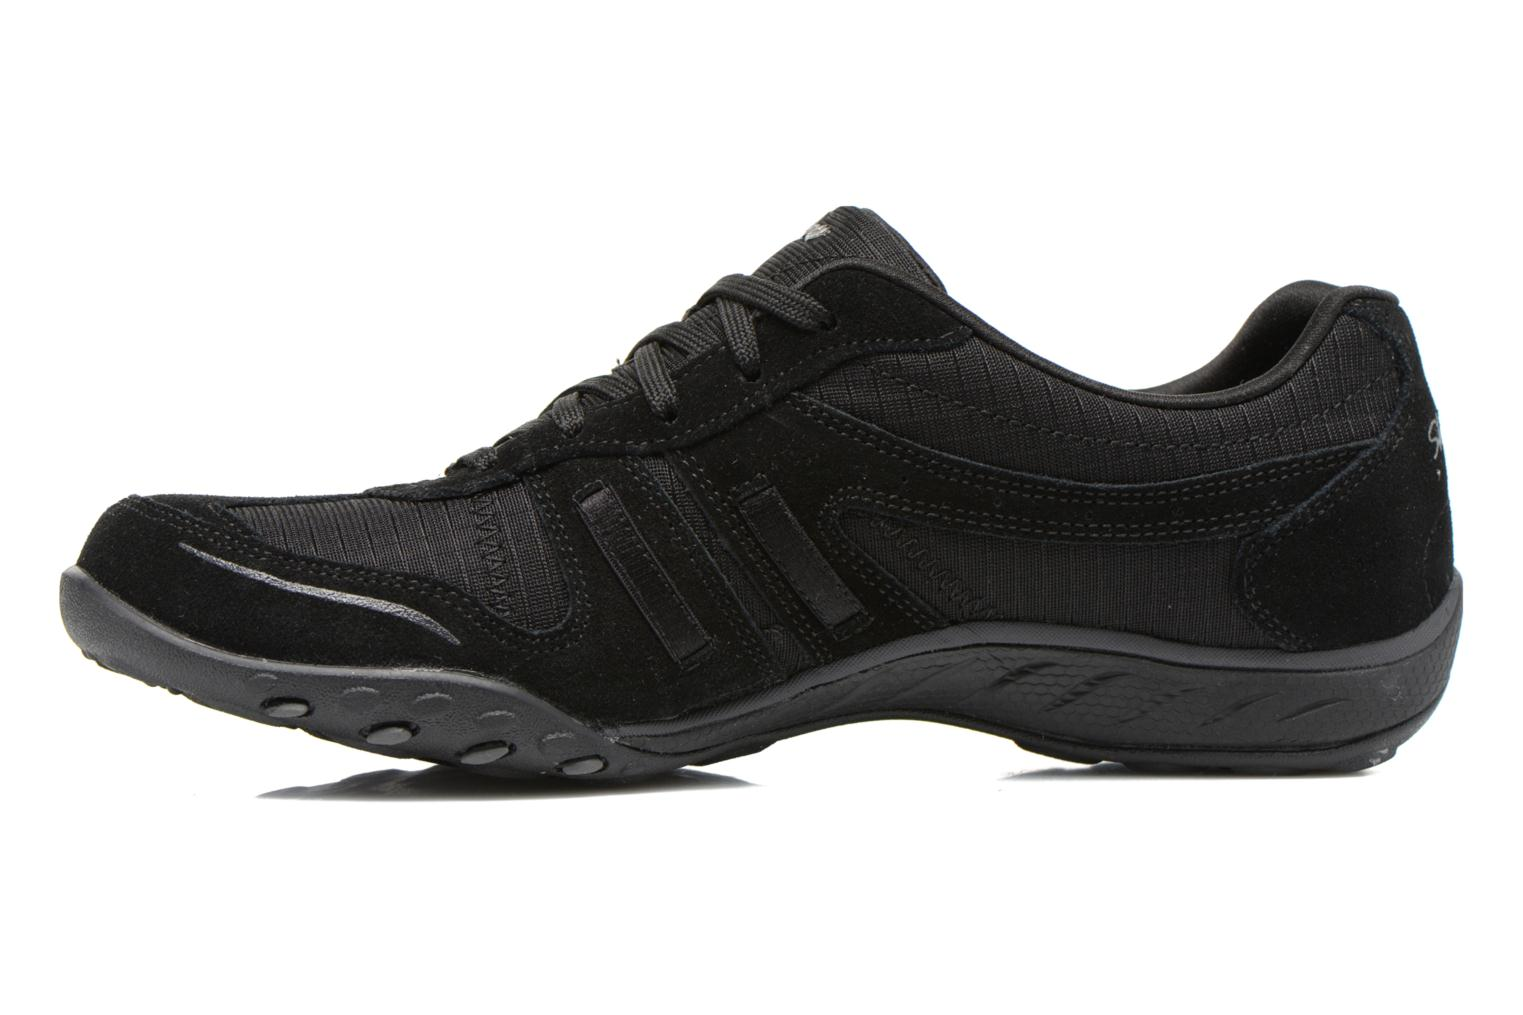 Baskets Skechers Breathe-Easy - Jackpot 22532 Noir vue face